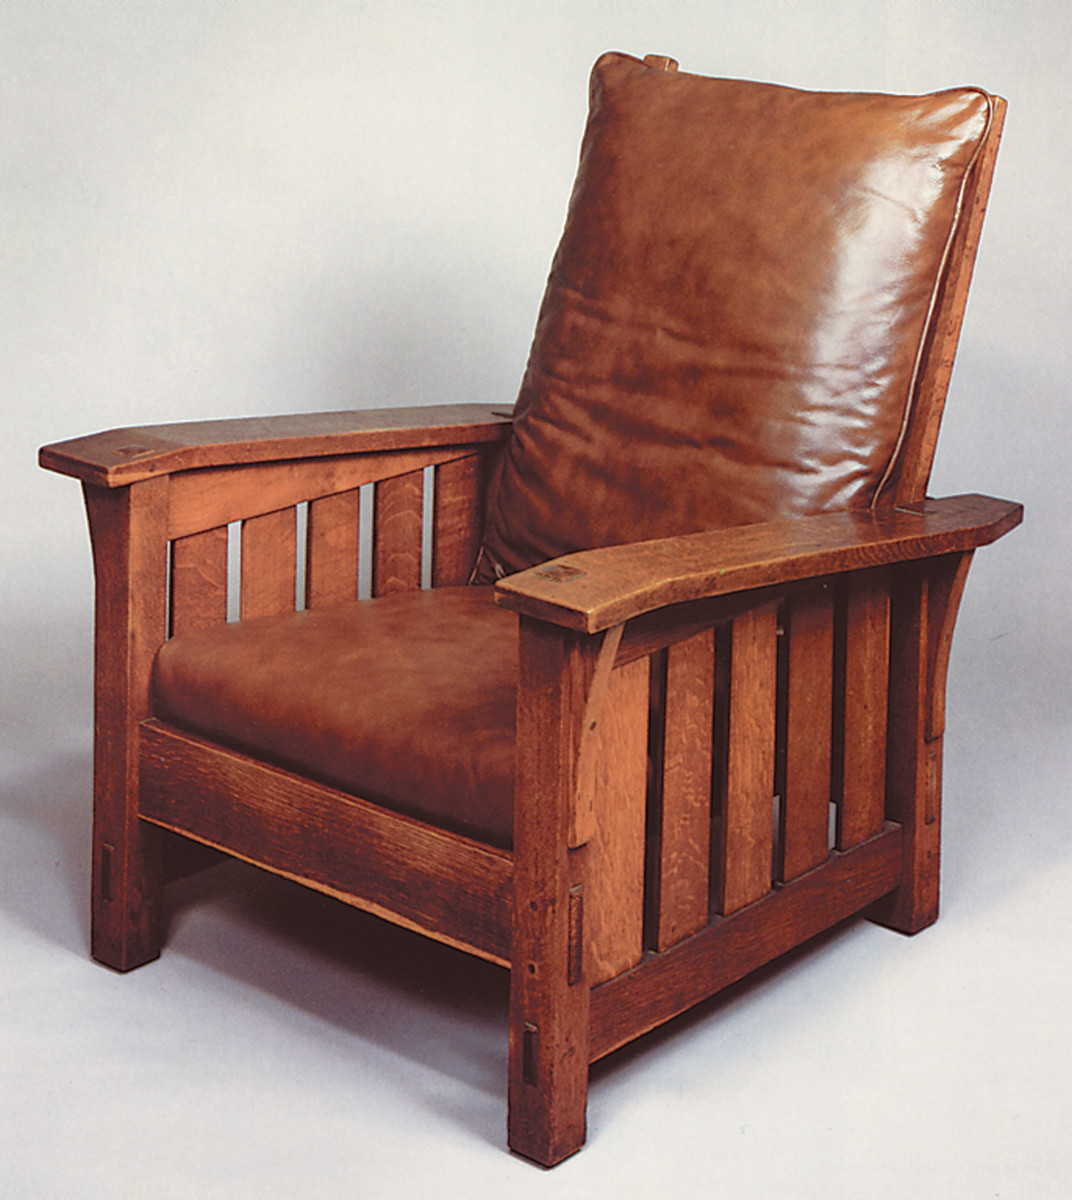 Stickley's version of the Morris Chair.